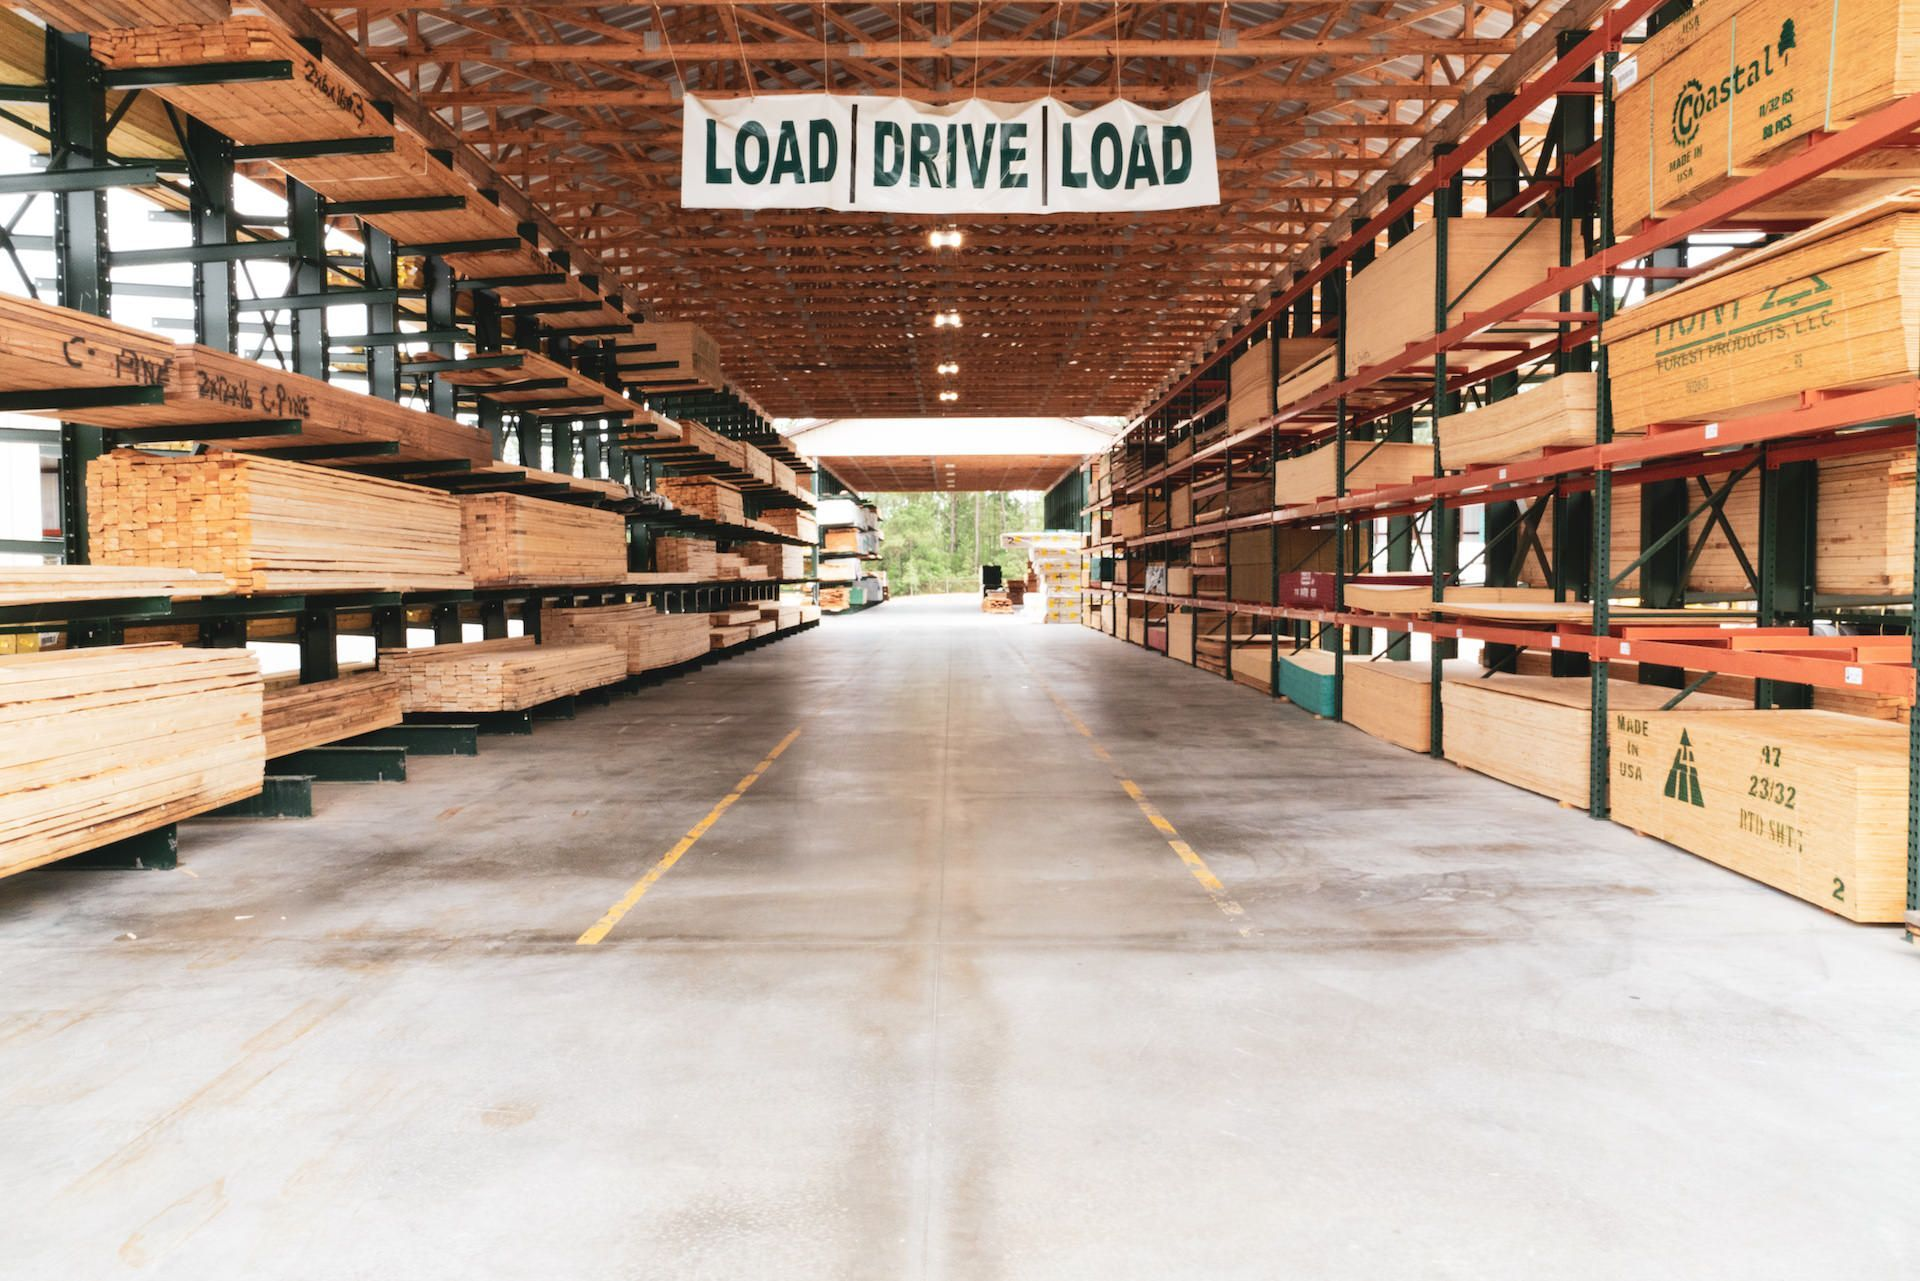 Have You Experienced Our Drive Through Lumber Yard Yet If You Need Wood For Your Next Project Why Struggle Lugging It Around A Store When Lumber Yard Valley